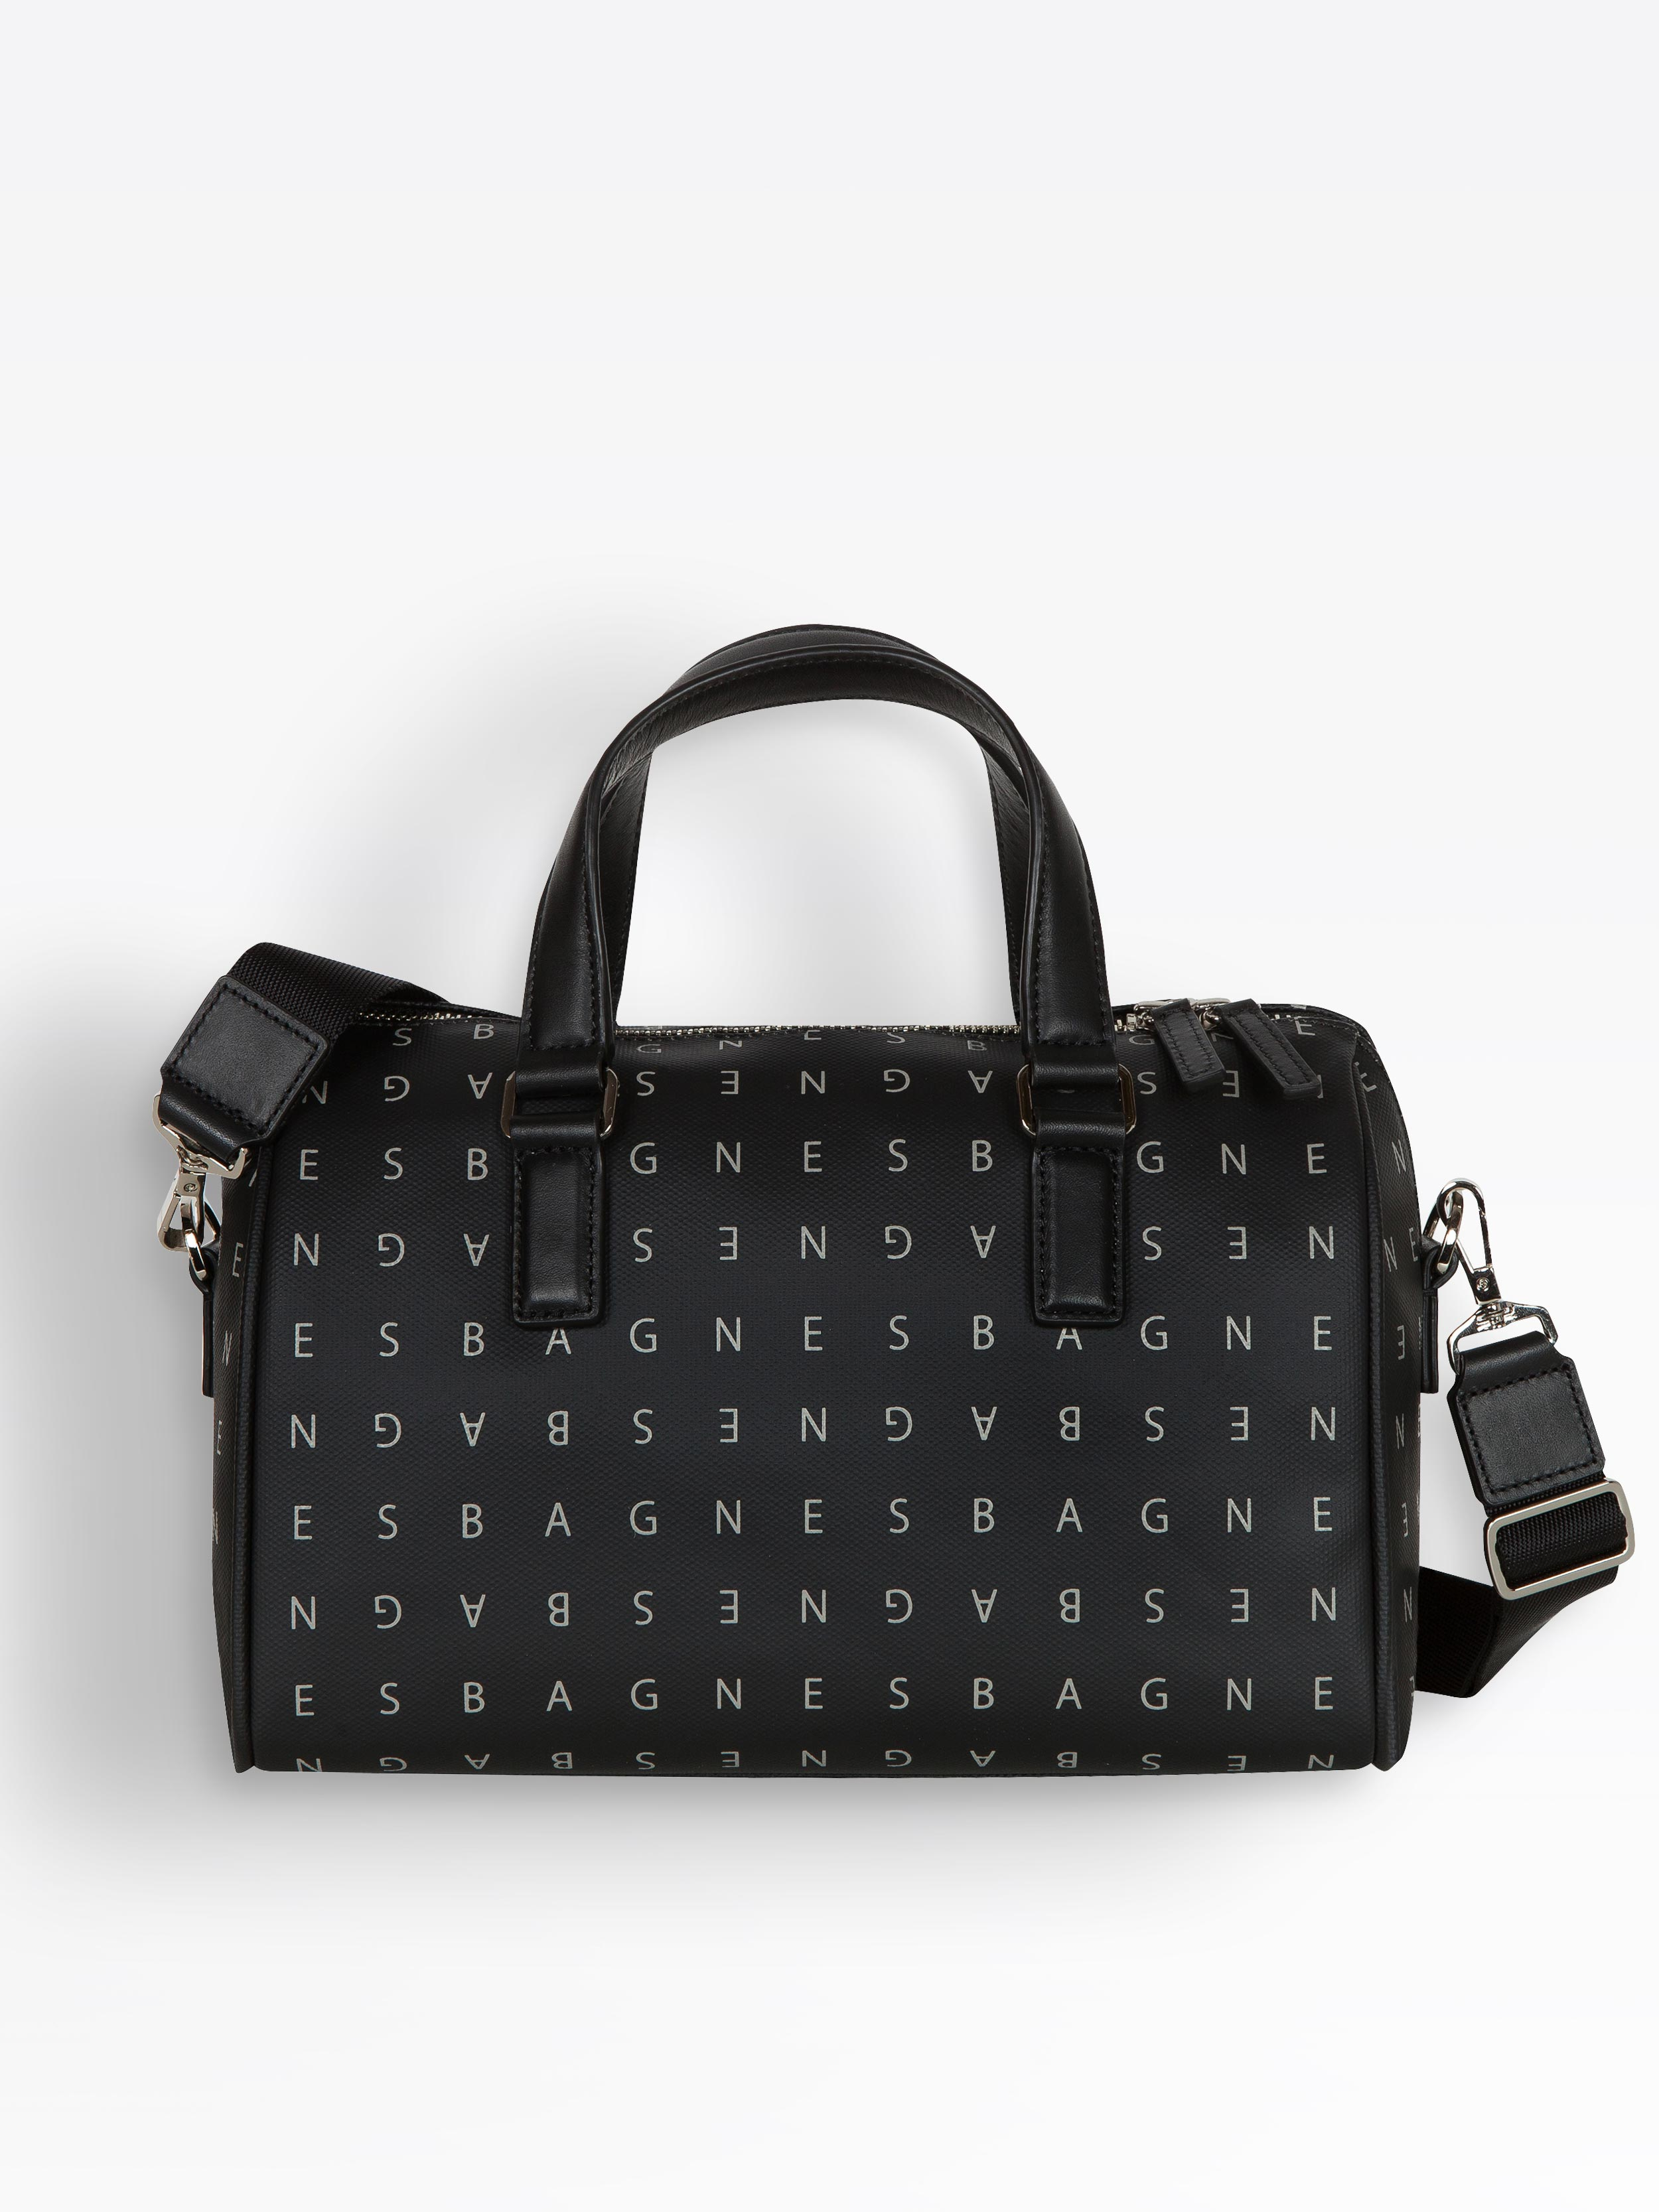 8cfa5482a85d ... black small boston bag. Loading... Image not available.